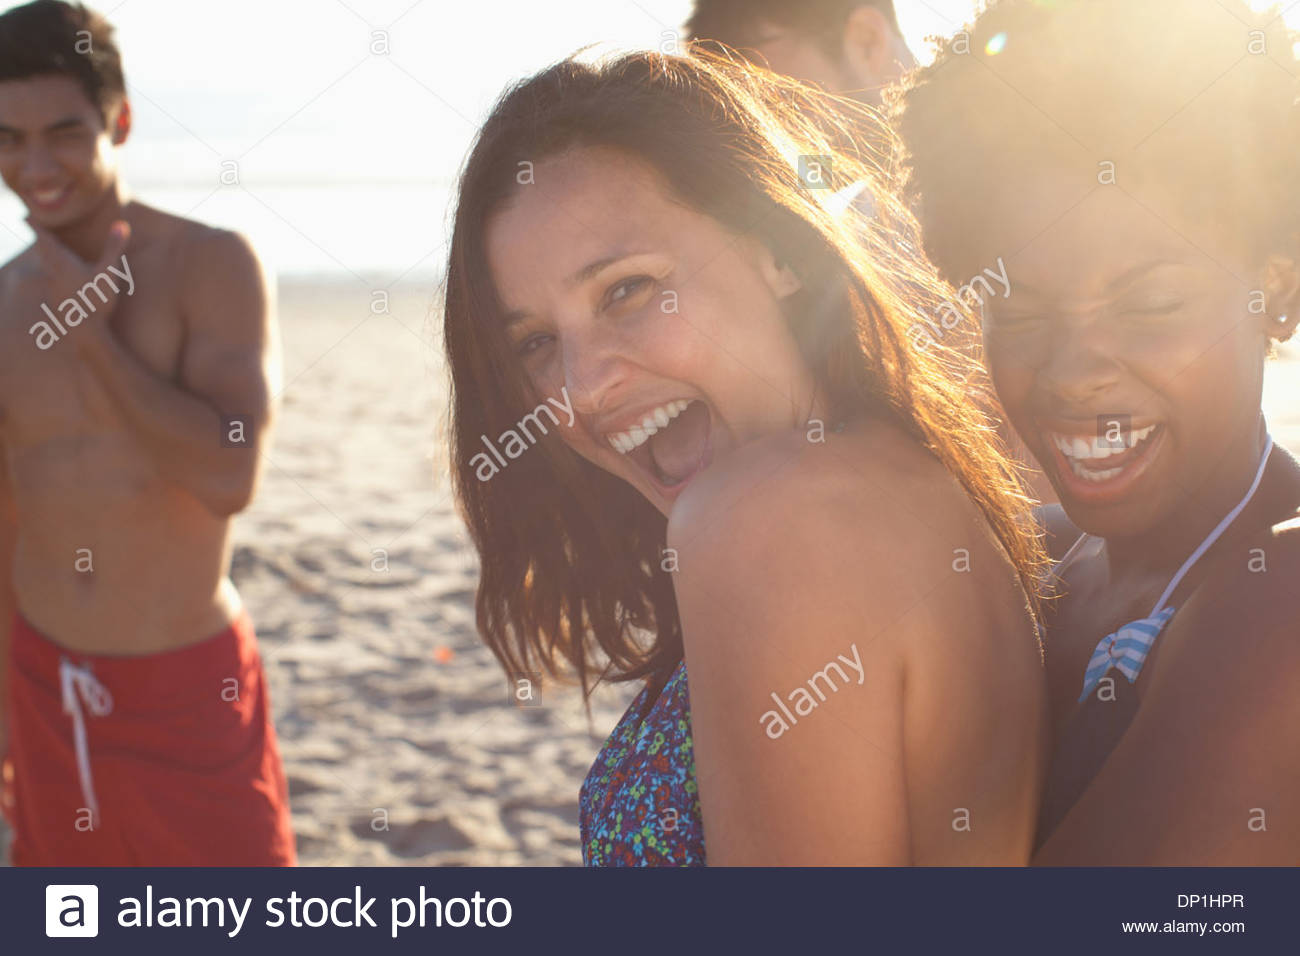 Women playing together on beach - Stock Image